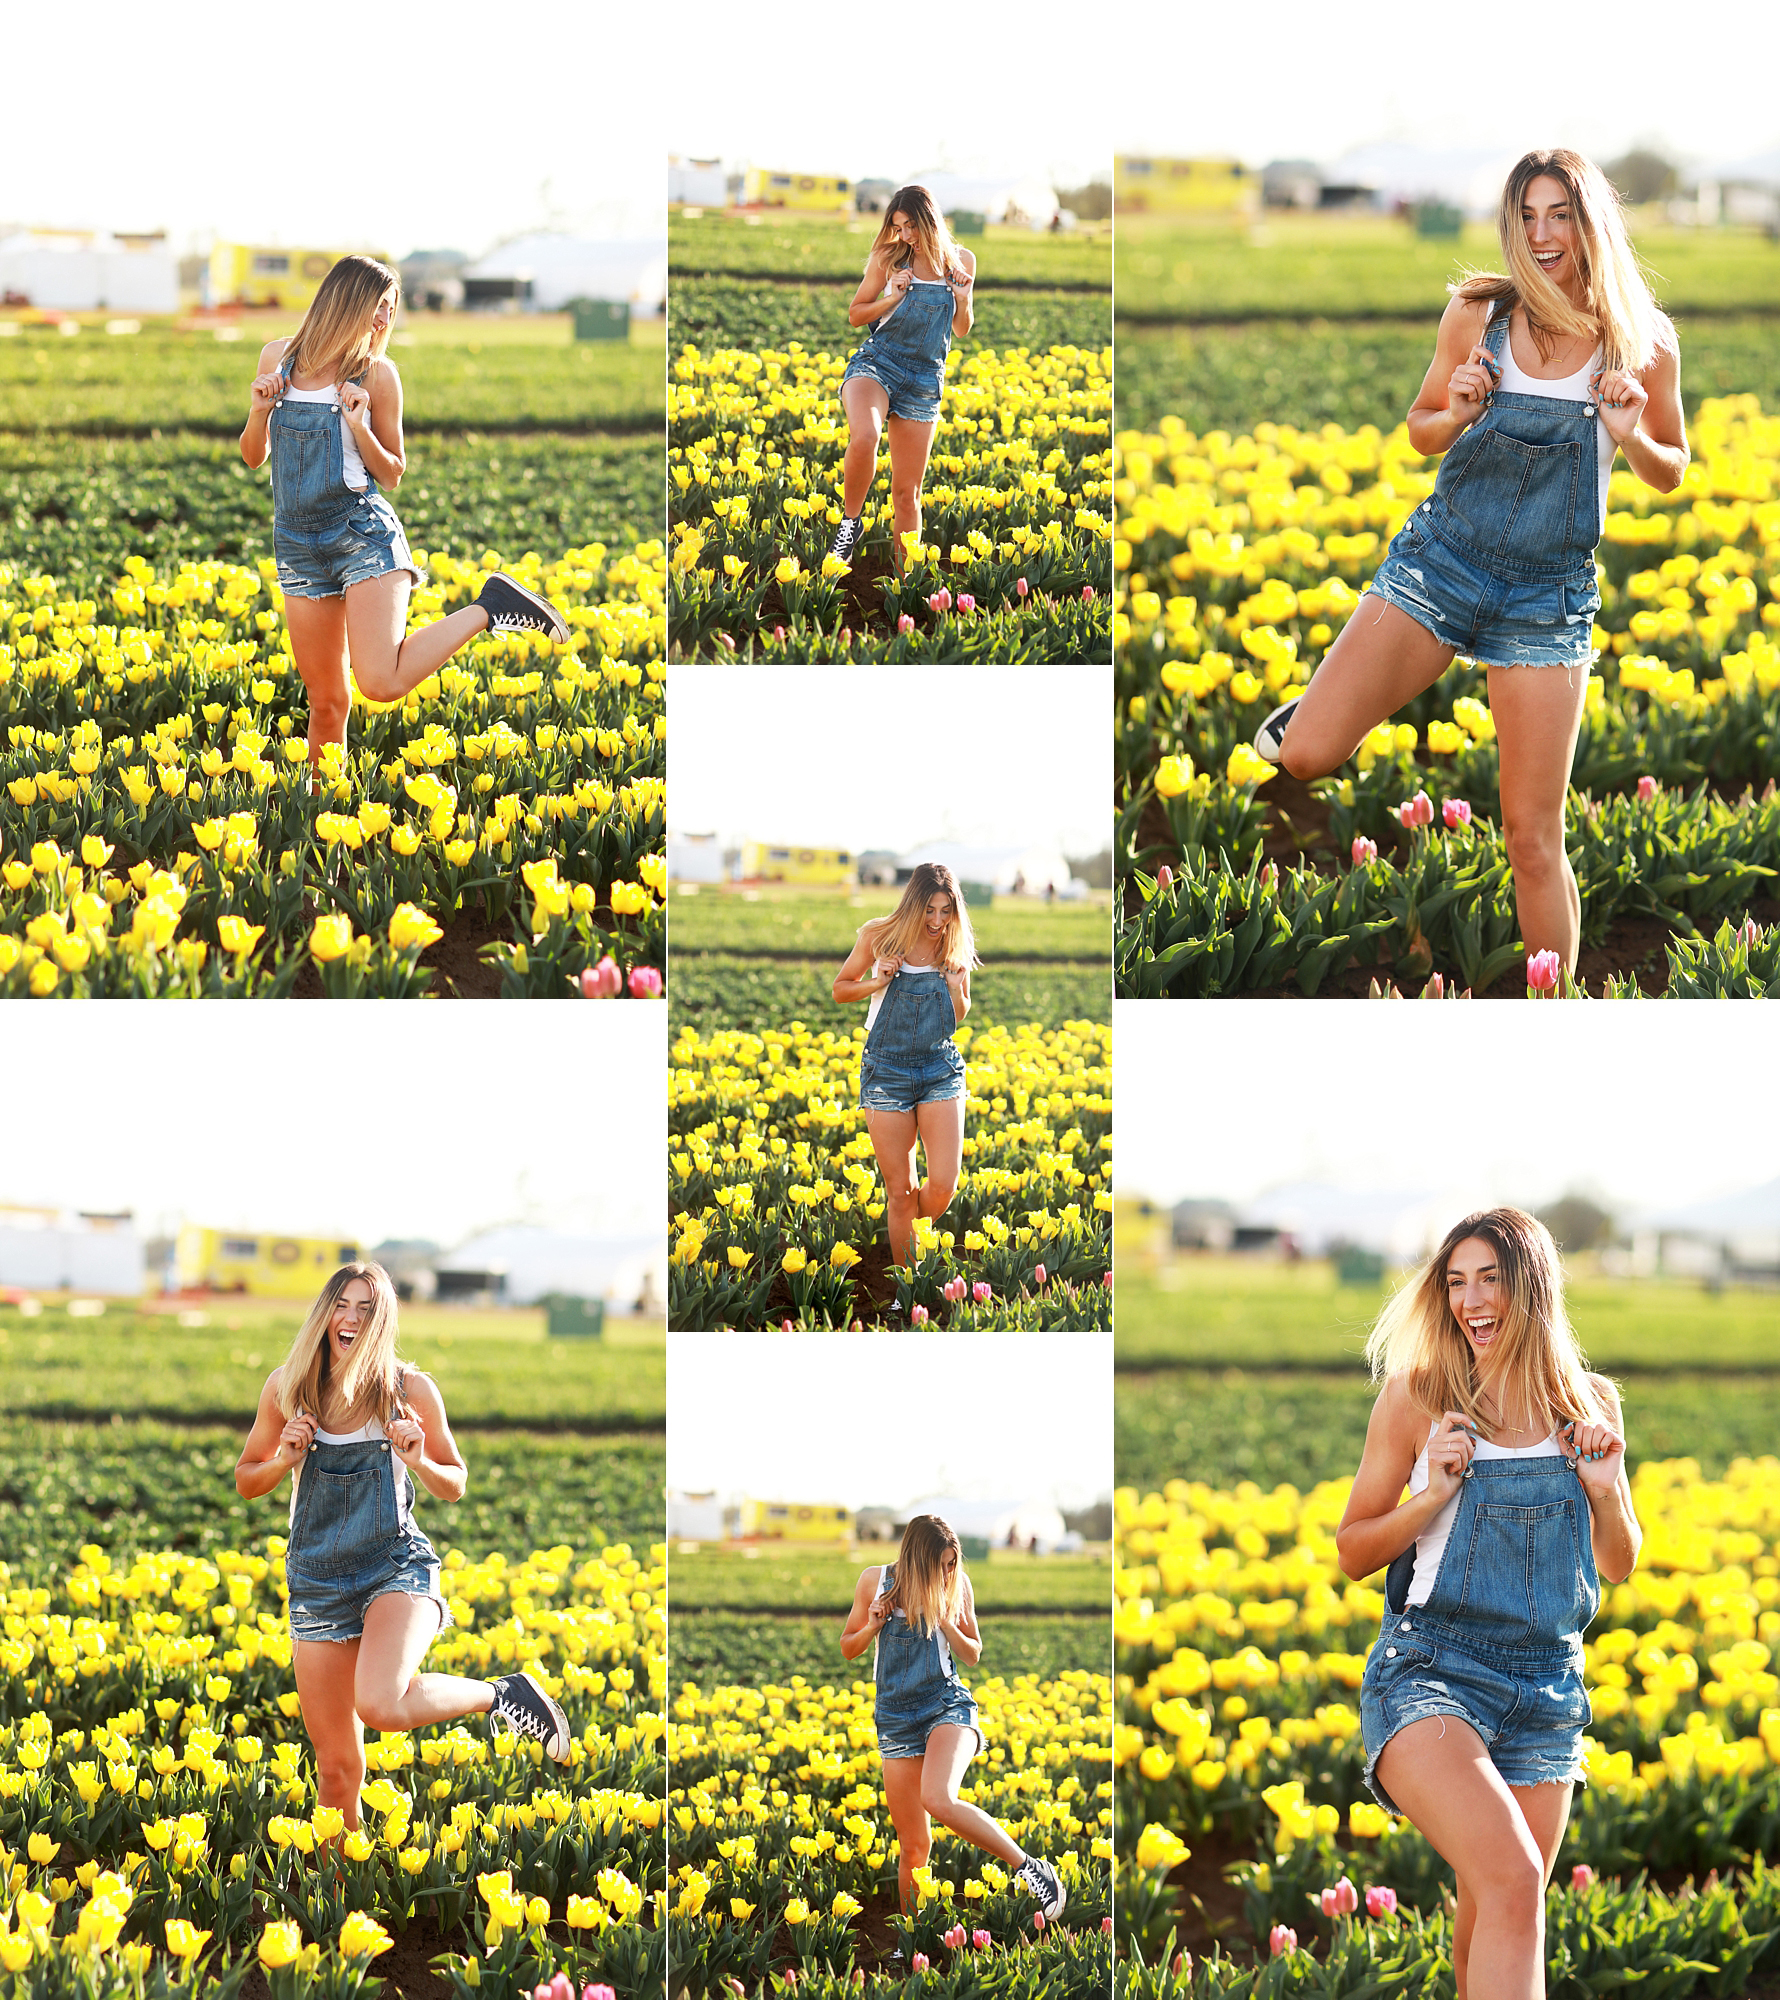 Woodburn Tulip Festival 2020.Class Of 2020 Tulip Fields Haley Graham Photography Blog